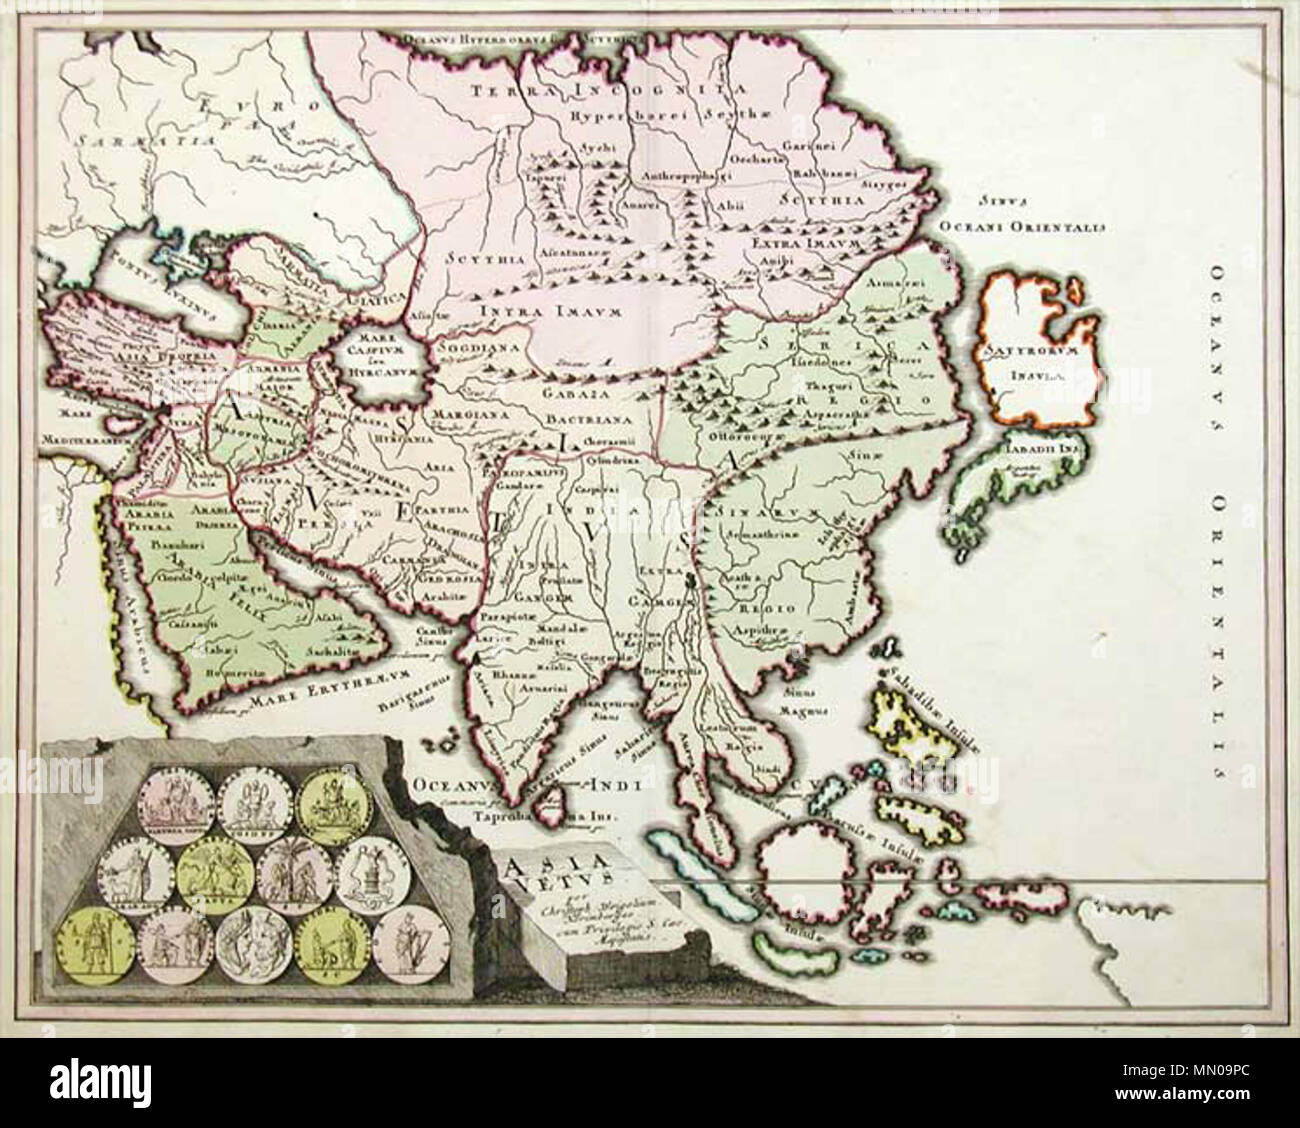 . English: 'Old Asia' (Asia Vetus) by Christoph Weigel, Nuremberg, 1719. 1719 map of Asia with Ptolemaic placenames. Copper engraving, with depictions of twelve antique coins in the bottom left corner.  . 1719.   Christoph Weigel the Elder (1654–1725)   Alternative names Christoph Weigel der Ältere  Description German engraver and publisher  Date of birth/death 9 November 1654 5 February 1725  Location of birth/death Marktredwitz Nuremberg  Work location Nuremberg  Authority control  : Q100116 VIAF:?12366914 ISNI:?0000 0001 0870 4350 ULAN:?500043269 LCCN:?n2008066461 NLA:?36586258 WorldCat  - Stock Image